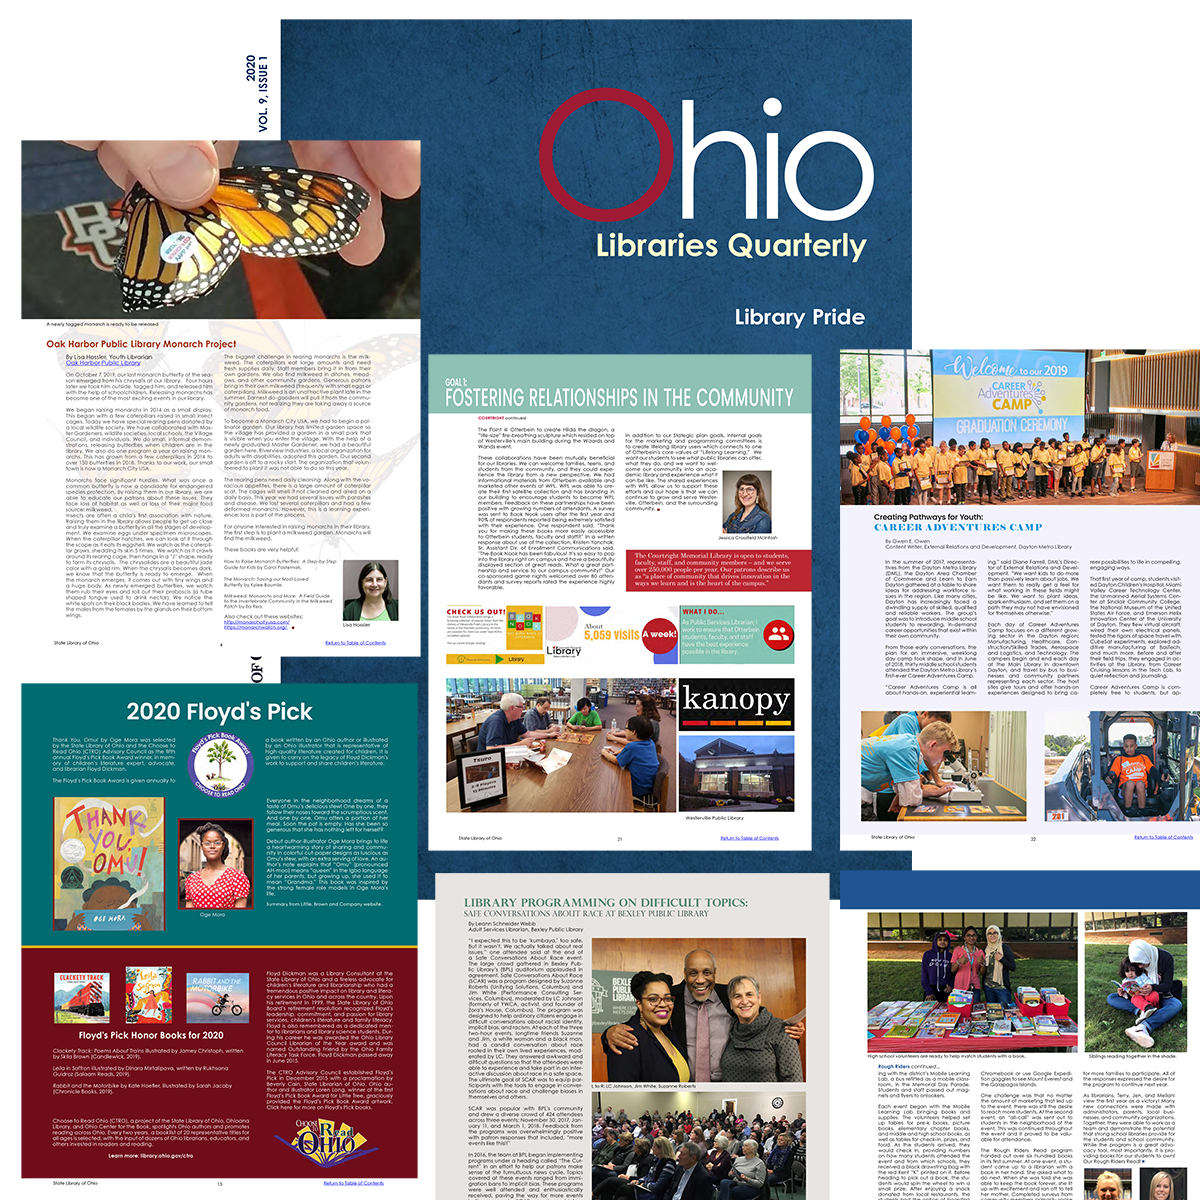 Graphic of Ohio Libraries Quarterly cover and inside pages v9-i1